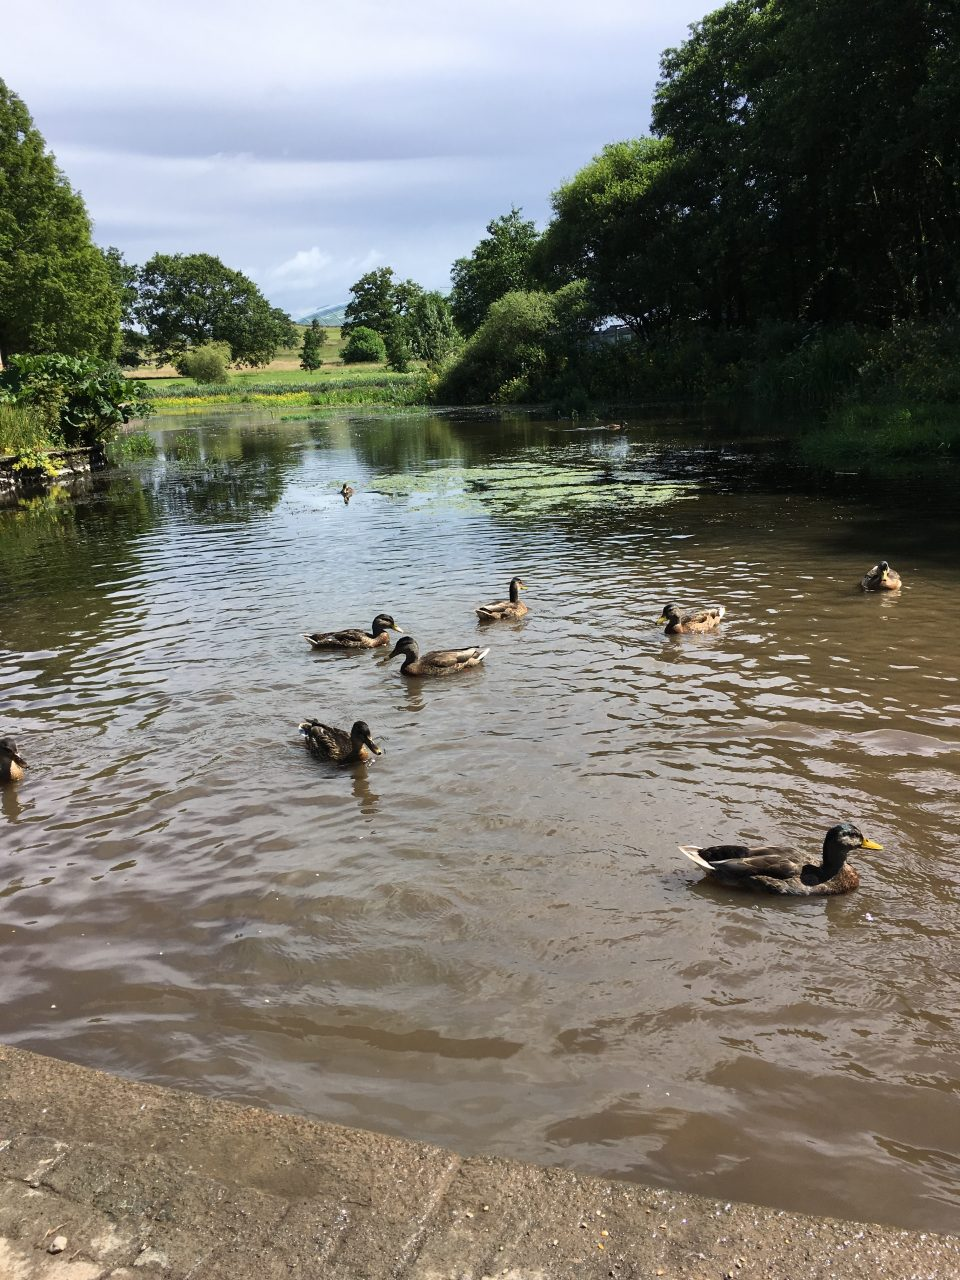 duck pond at the entrance of the garden